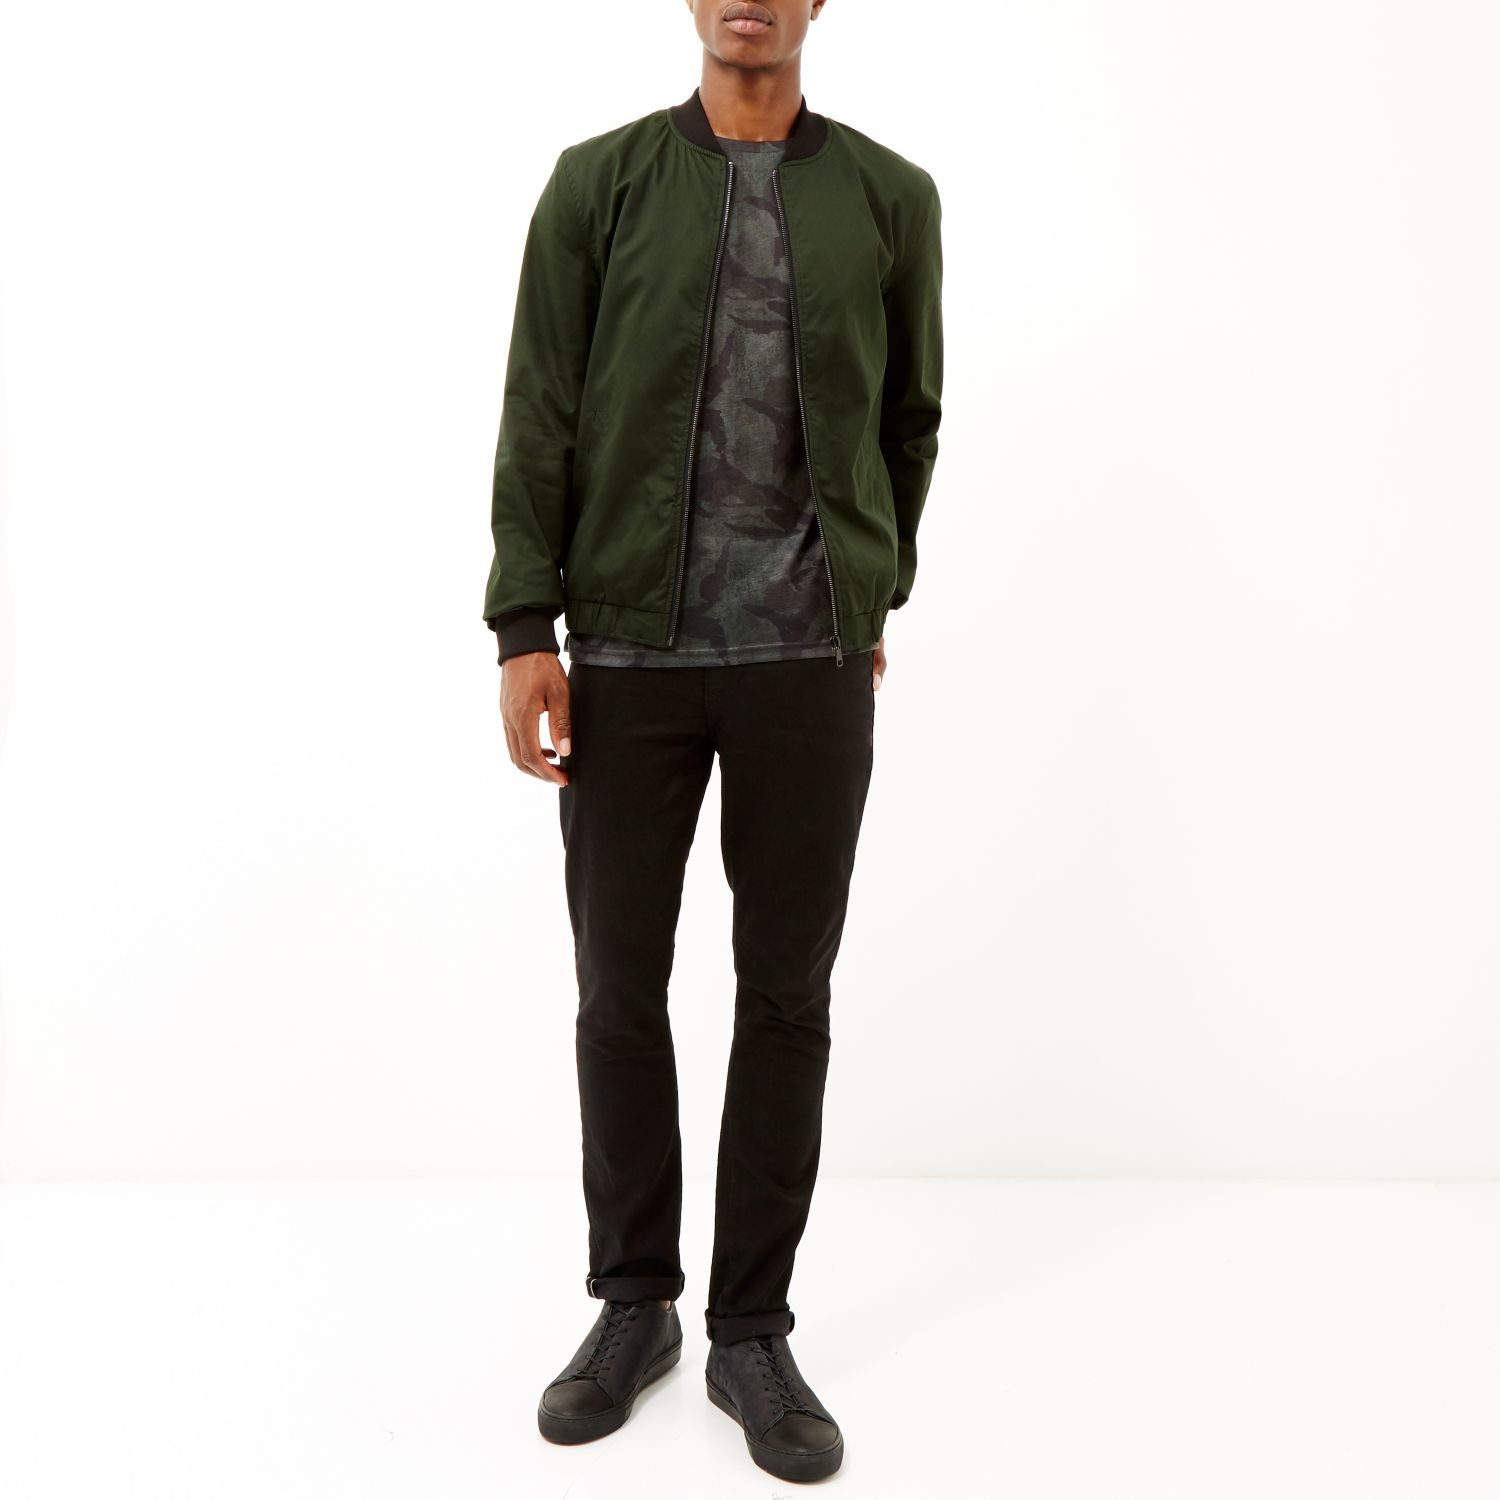 Dark Green Bomber Jacket | Outdoor Jacket